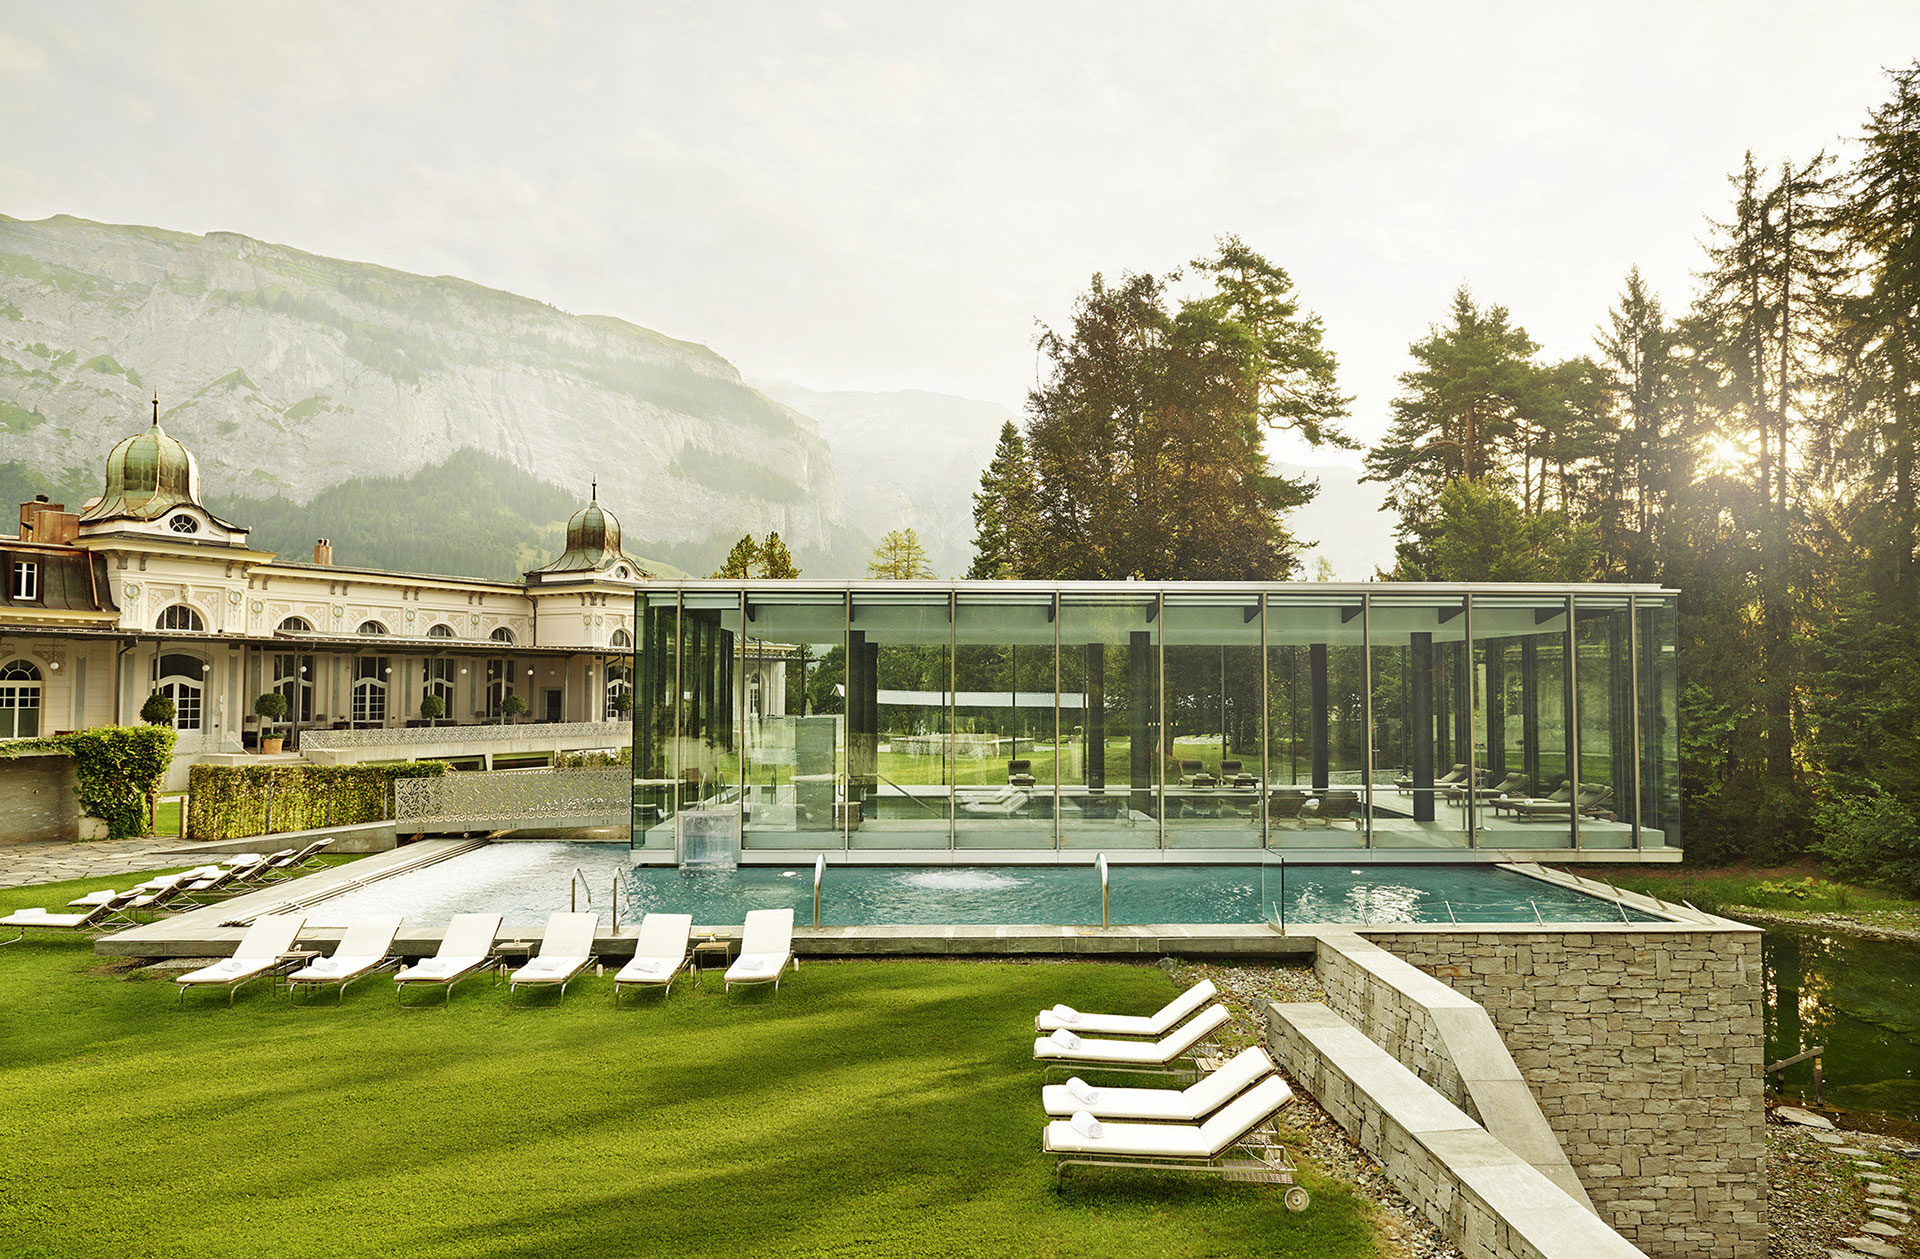 exterior shot of the waldhaus flims spa building and pool. The building is white with decorative fixtures at the top. The pool is indoor and outdoor. The indoor portion of the pool is encased in a glass fixture. The outside portion of the pool is lined with white lounge chairs. In the distance are evergreen trees and the swiss alps.